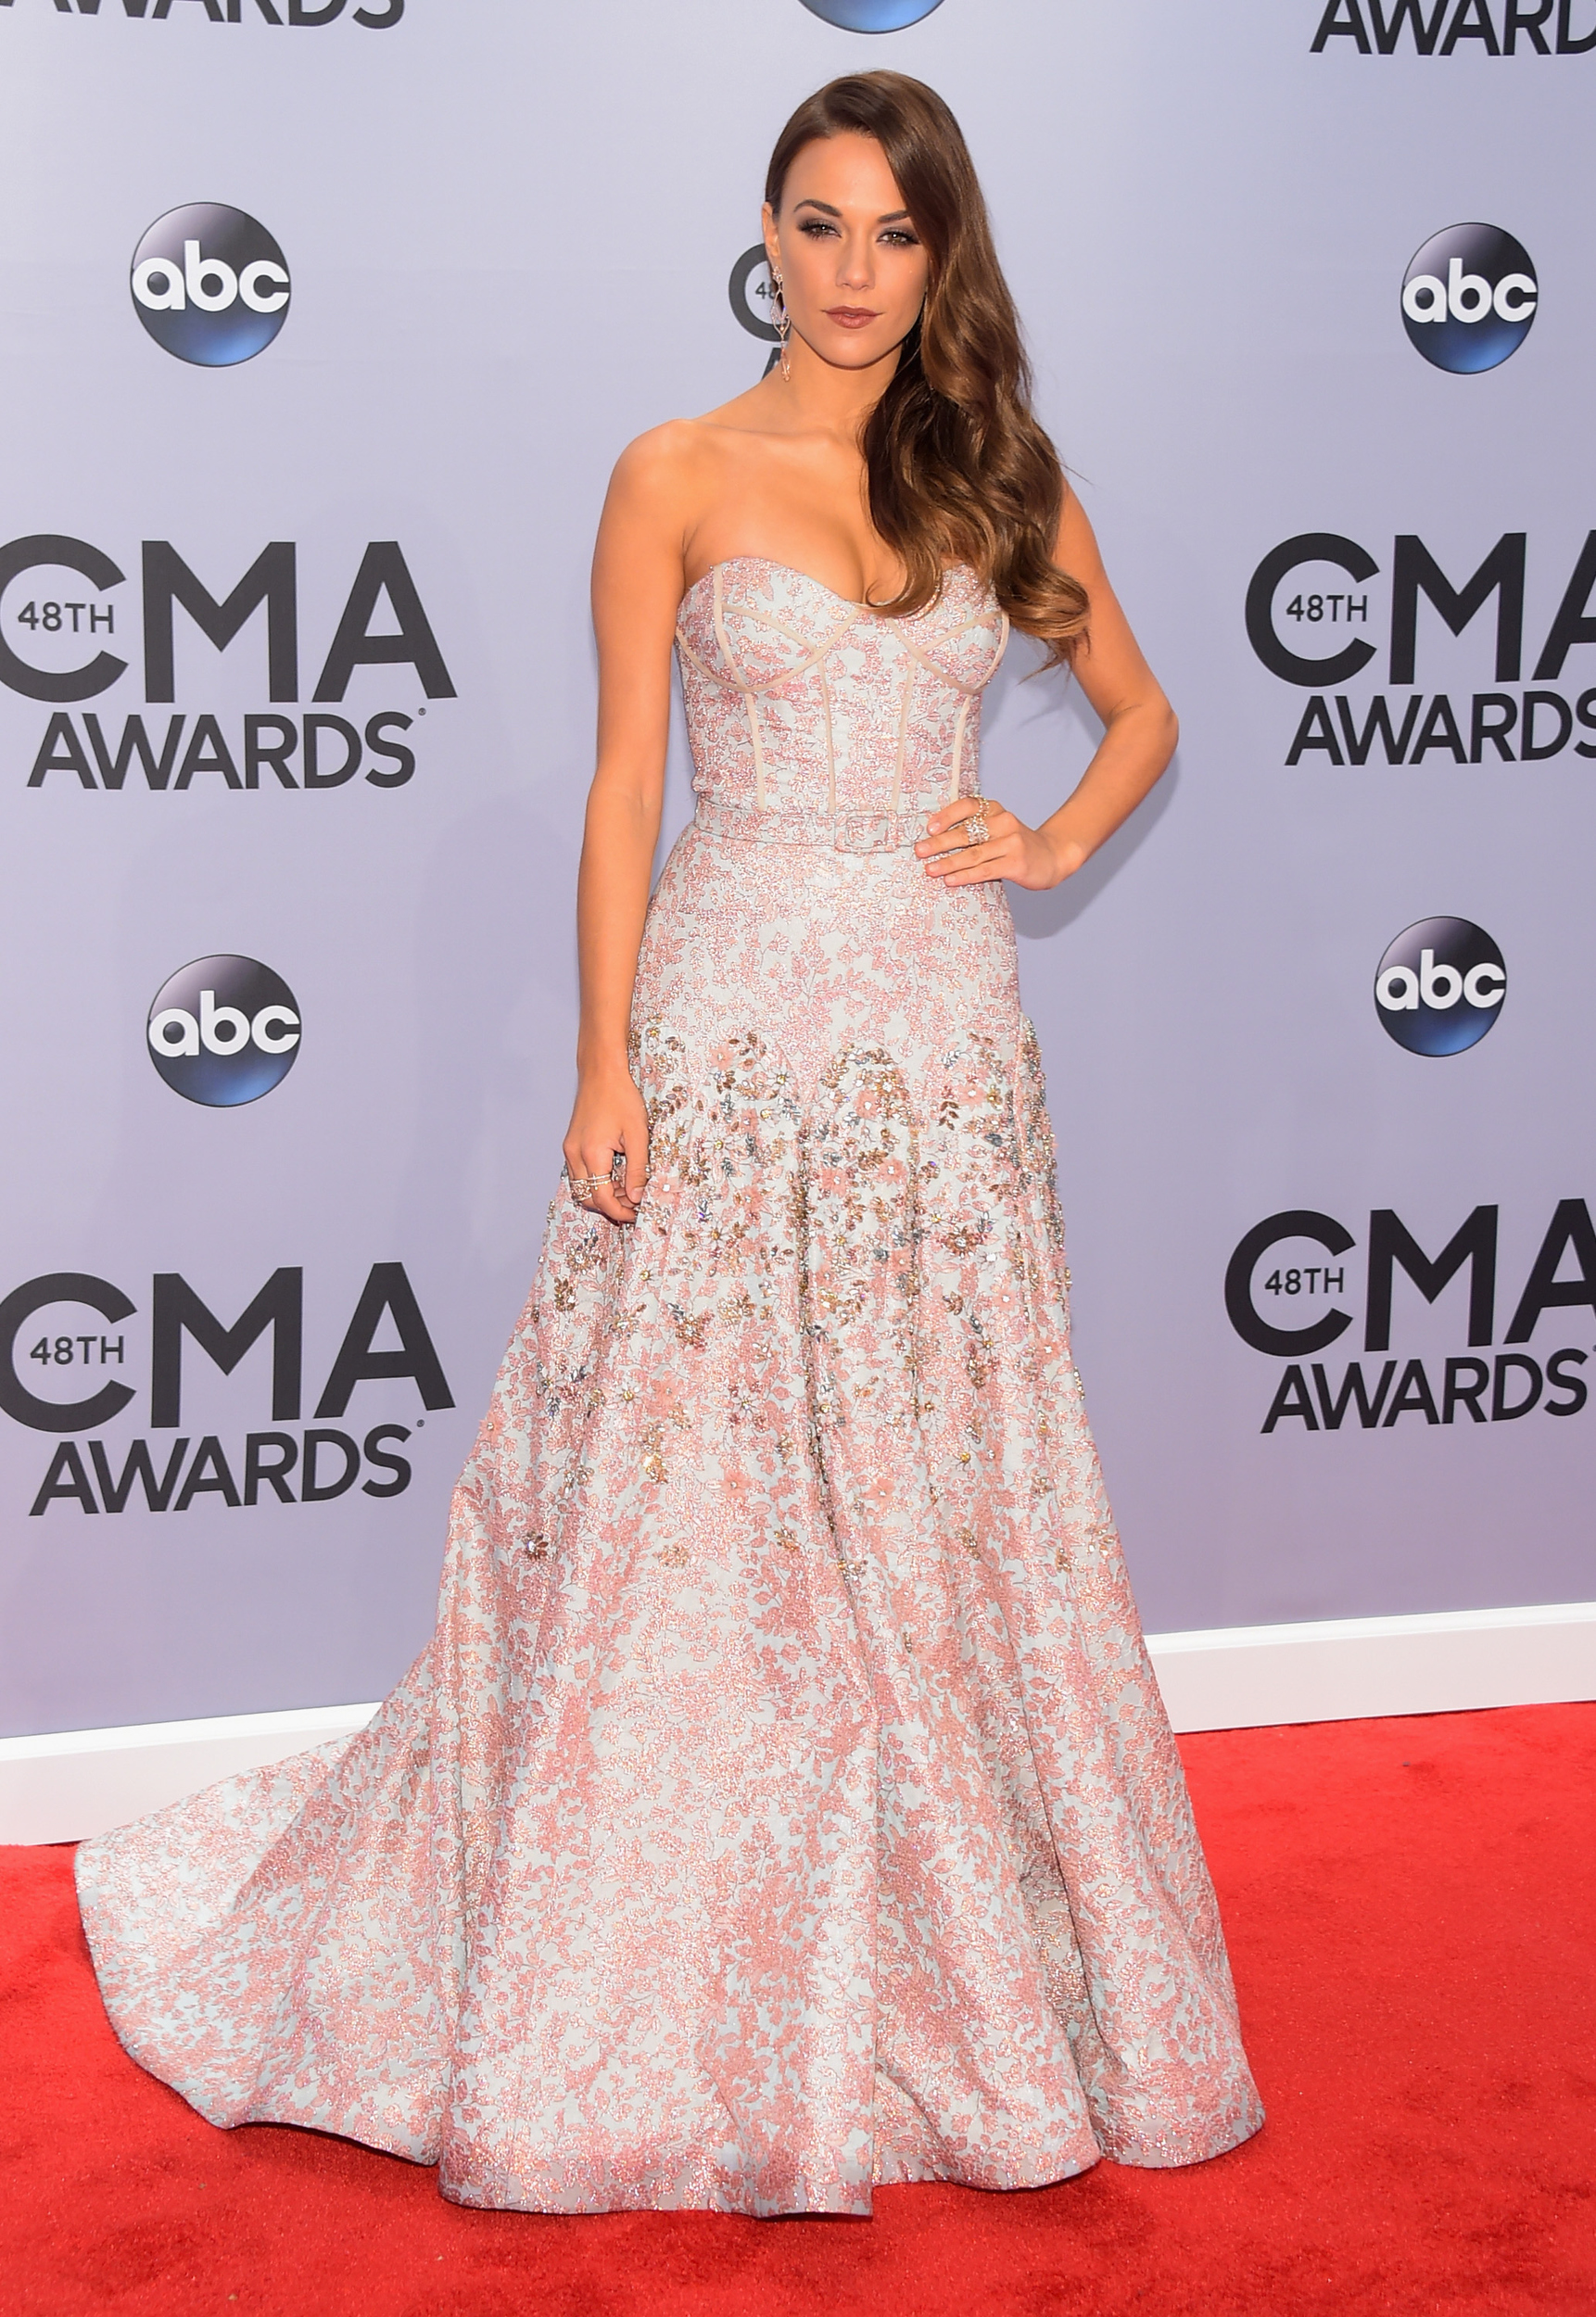 48th-annual-cma-awards-arrivals-11